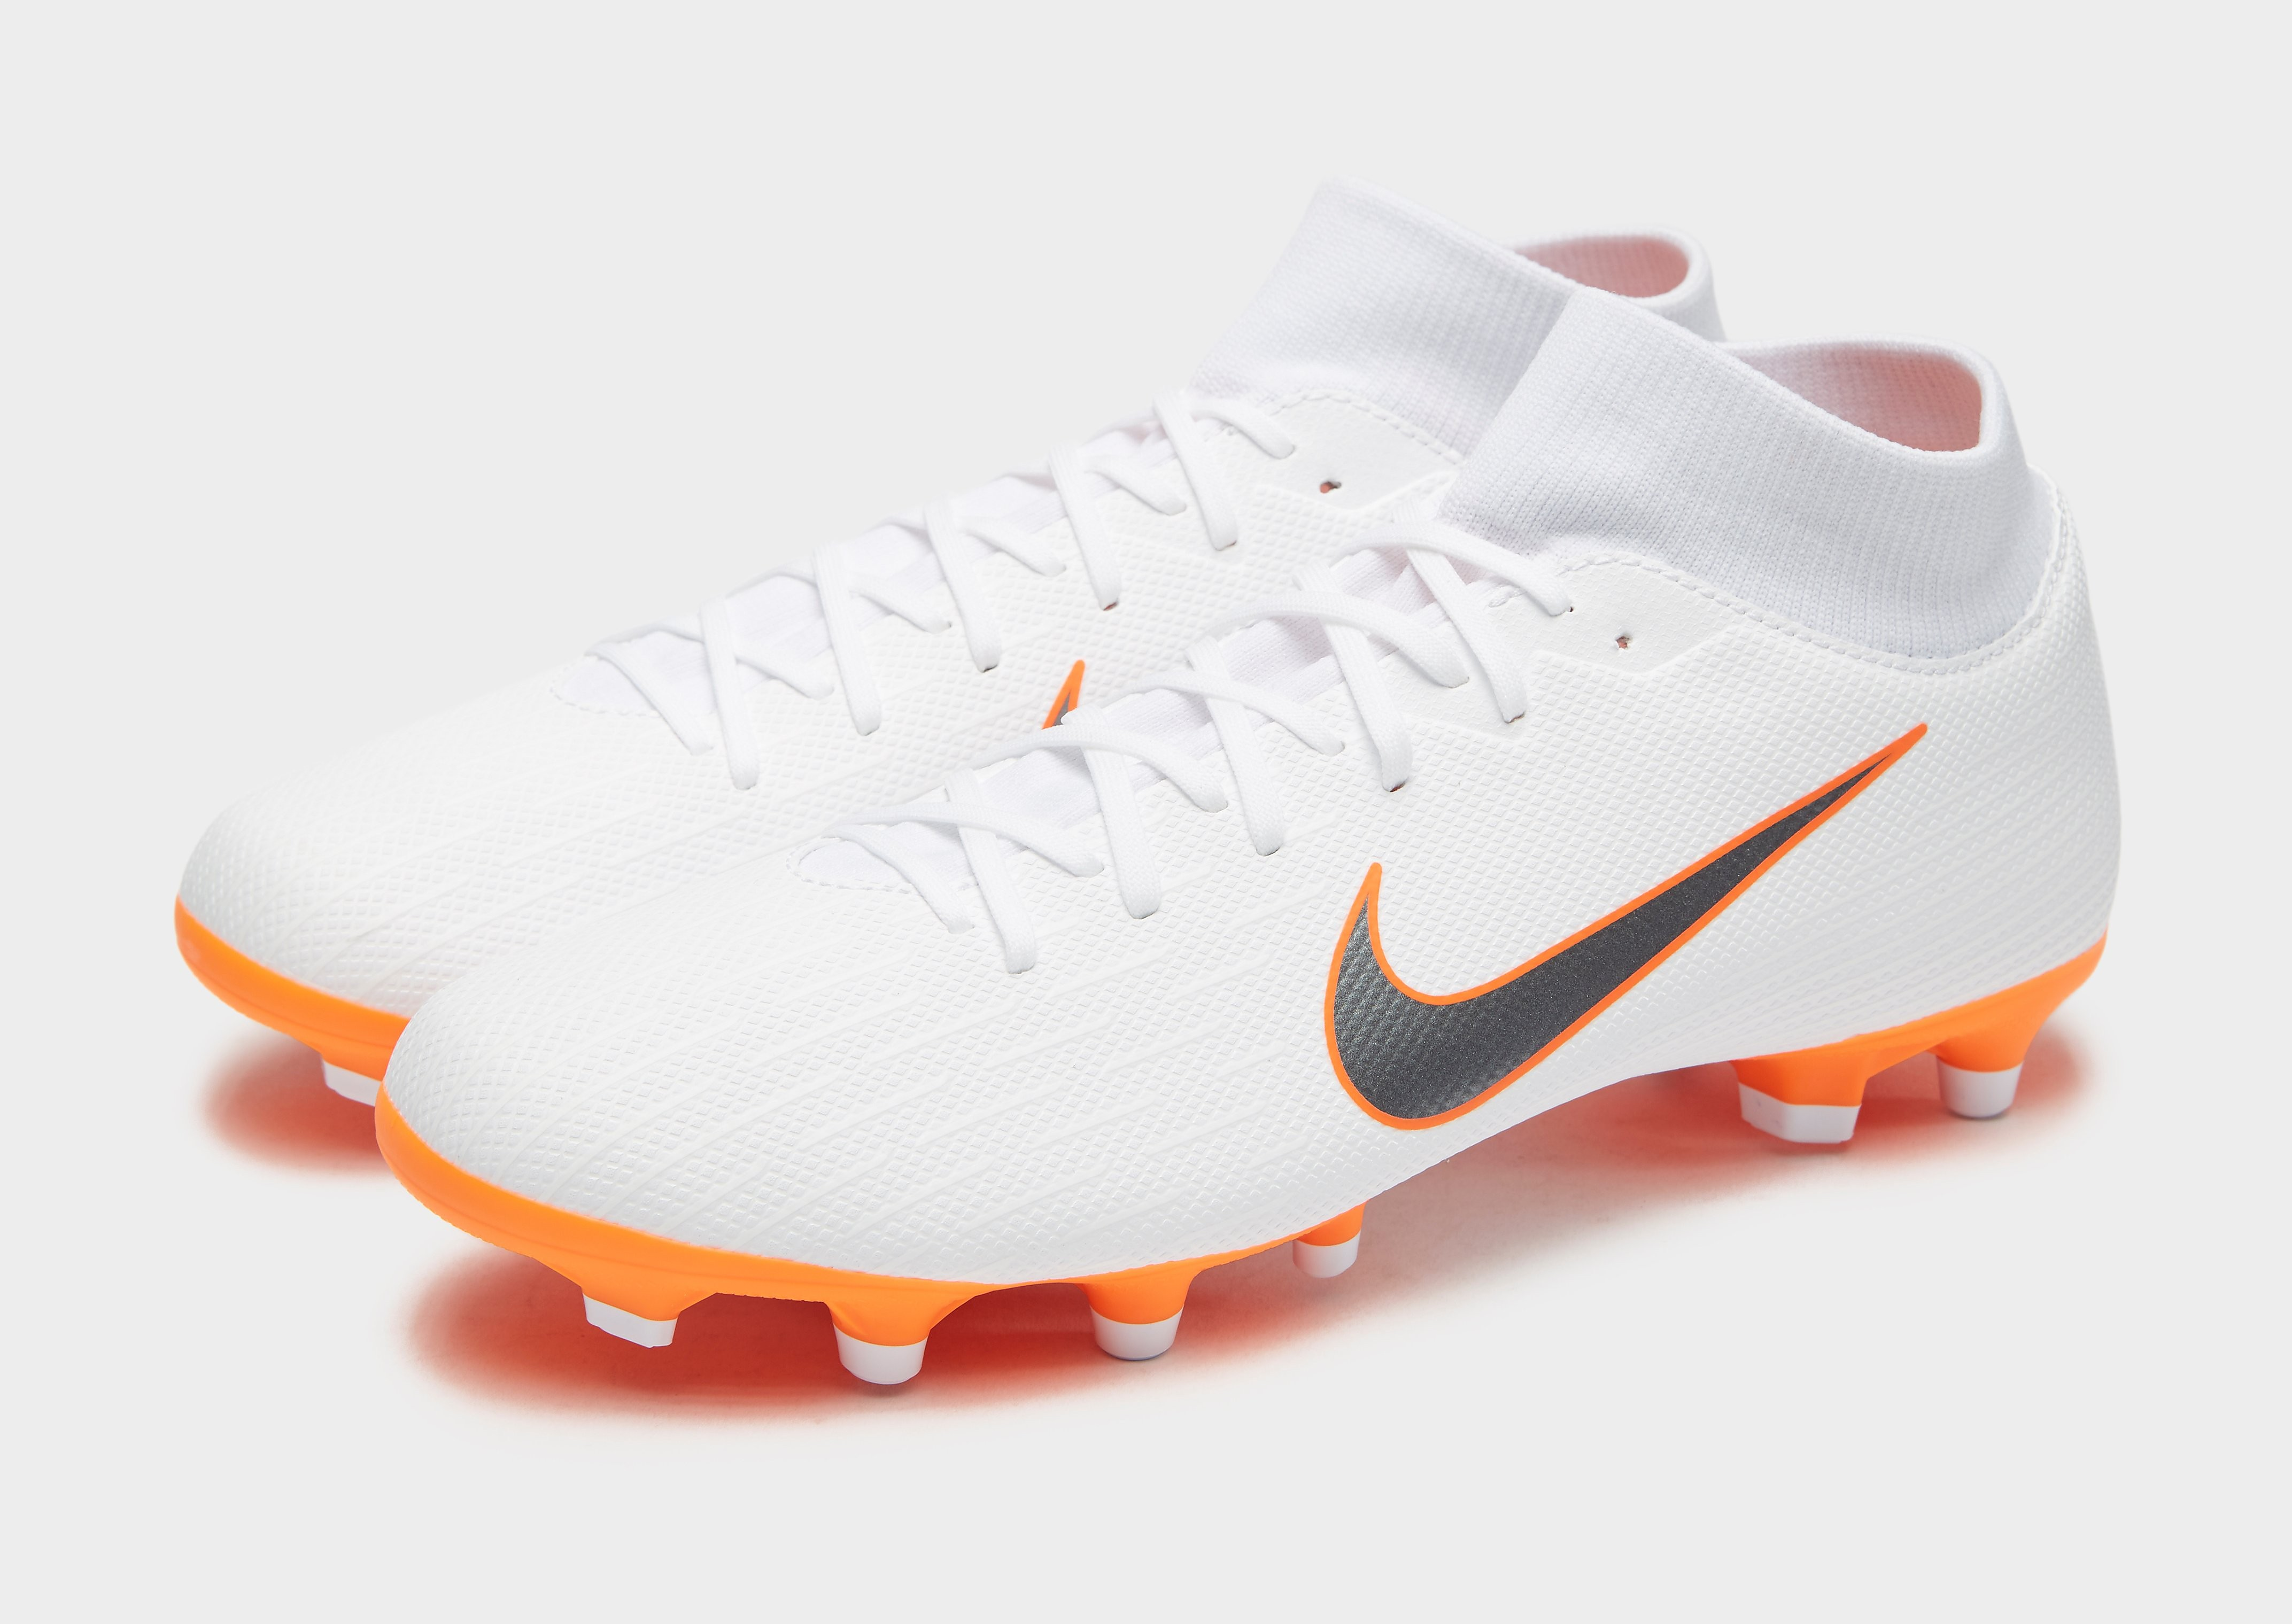 Nike Just Do It Mercurial Superfly Academy MG